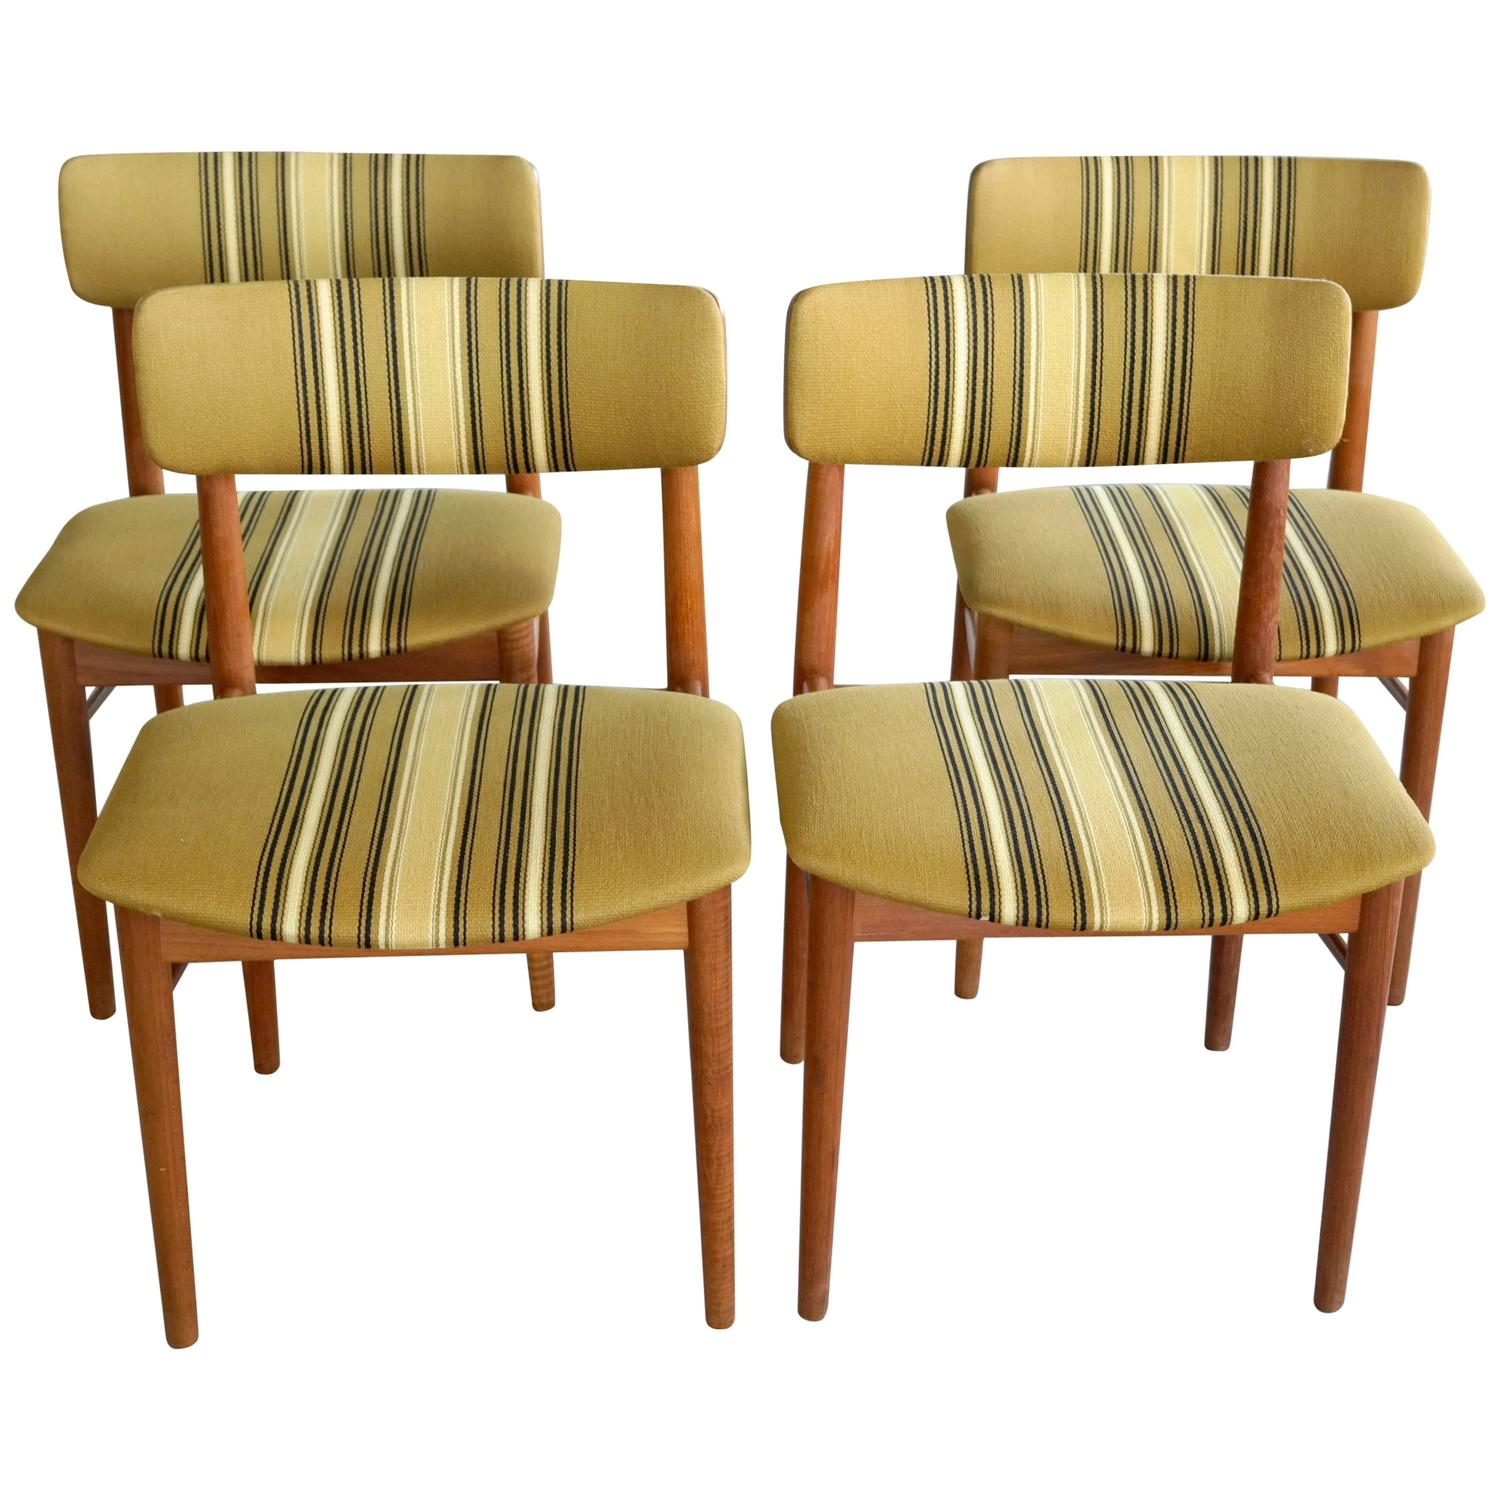 Set of Four Danish Maple Dining Chairs Attributed to Soroe